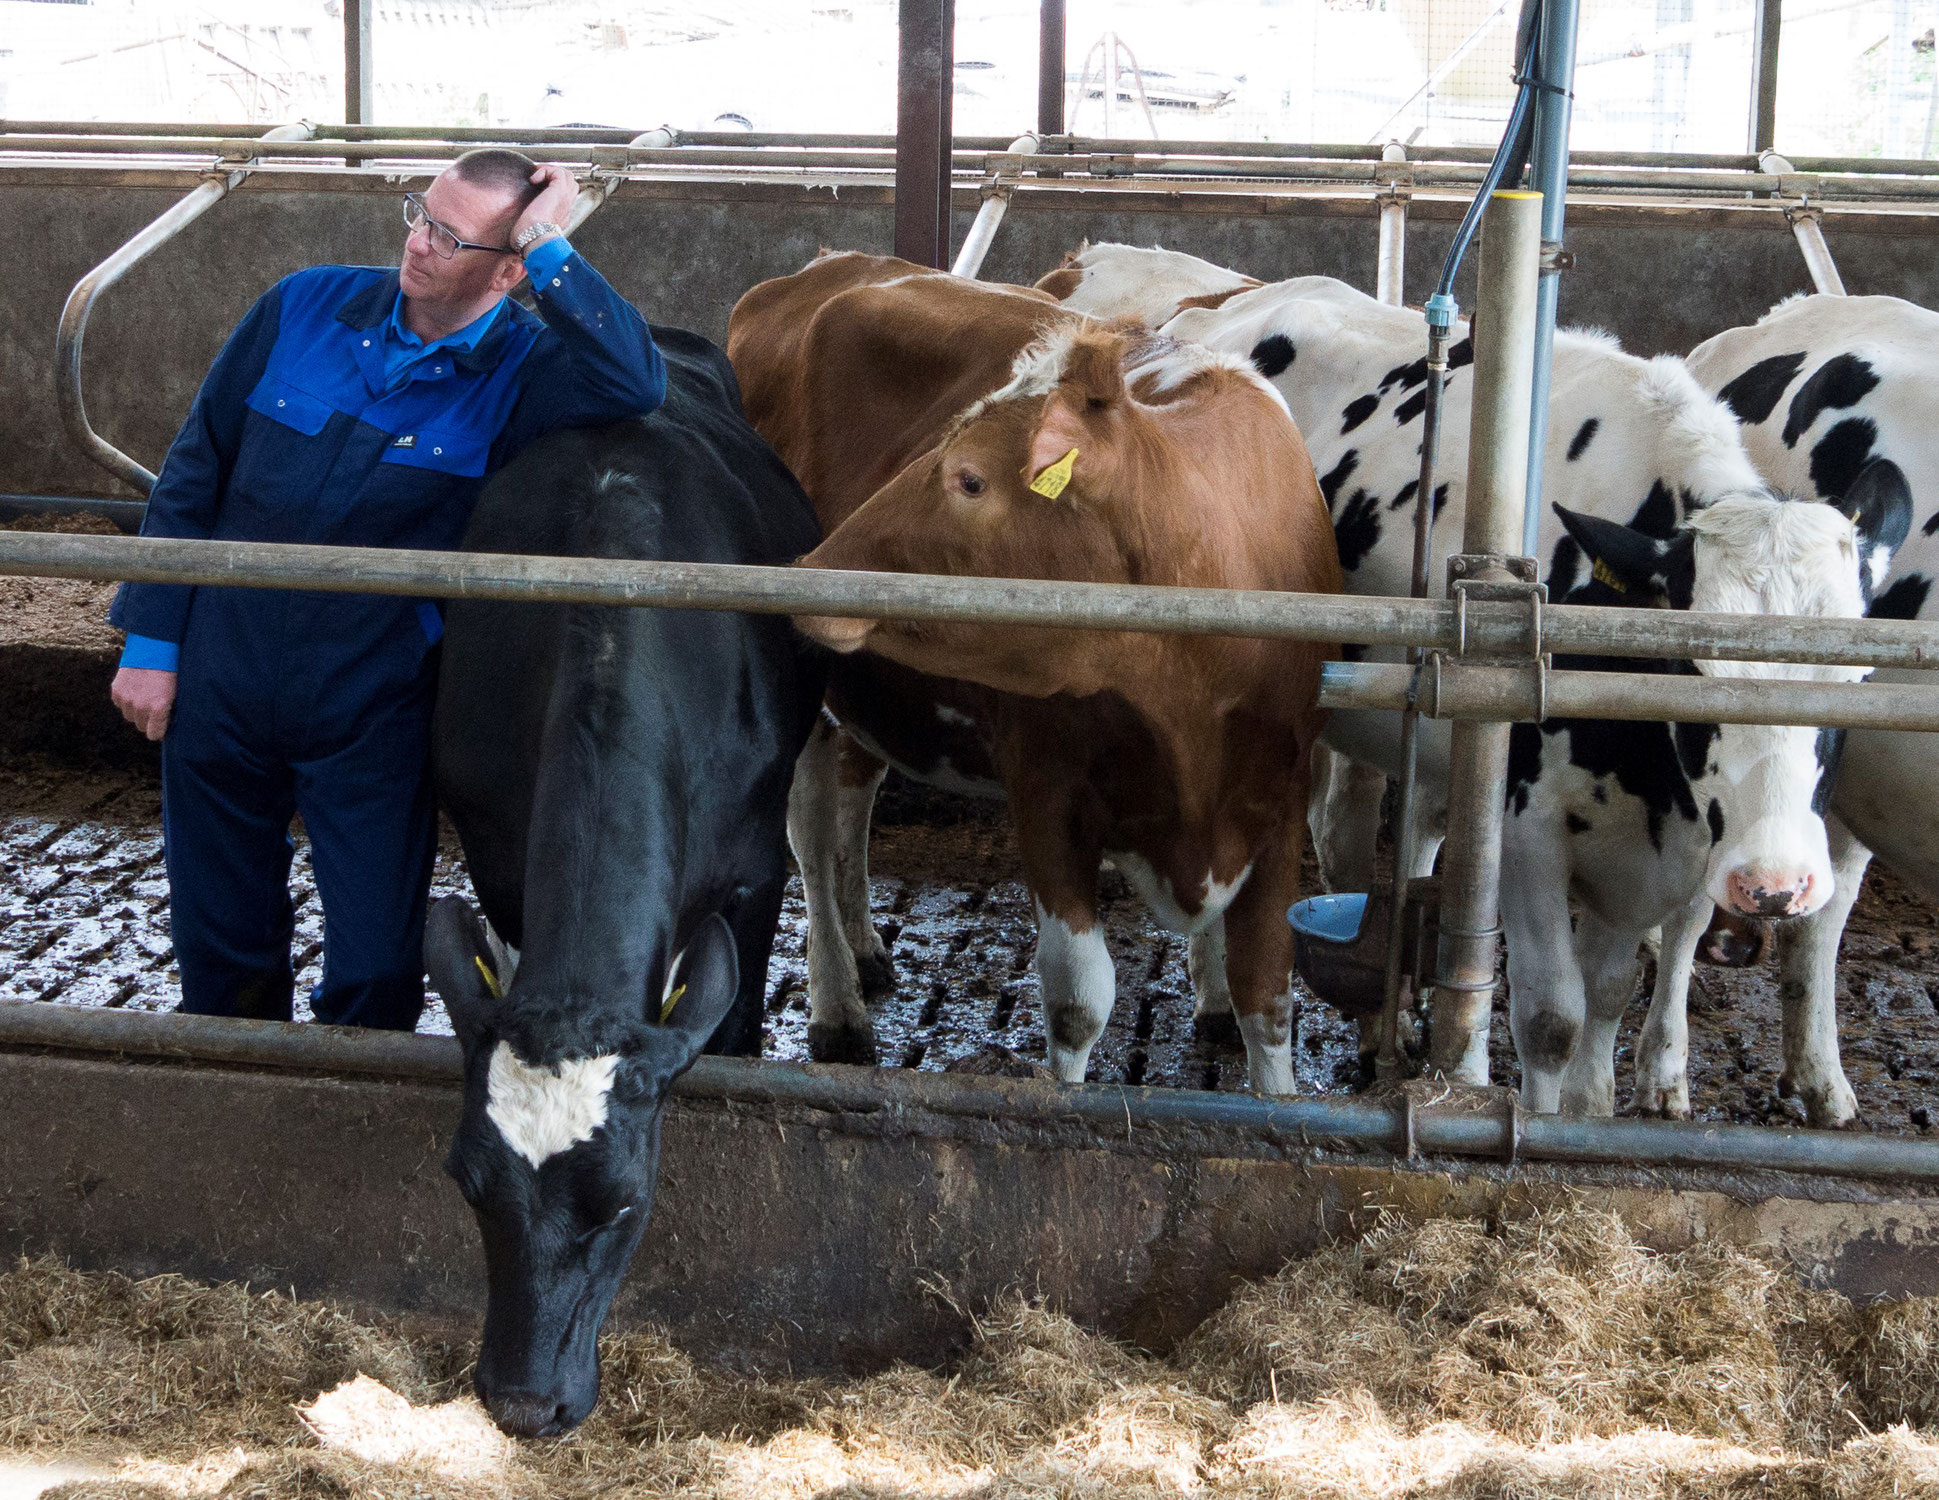 IT STARTS WITH A CORRECT RAISING OF THE CALF